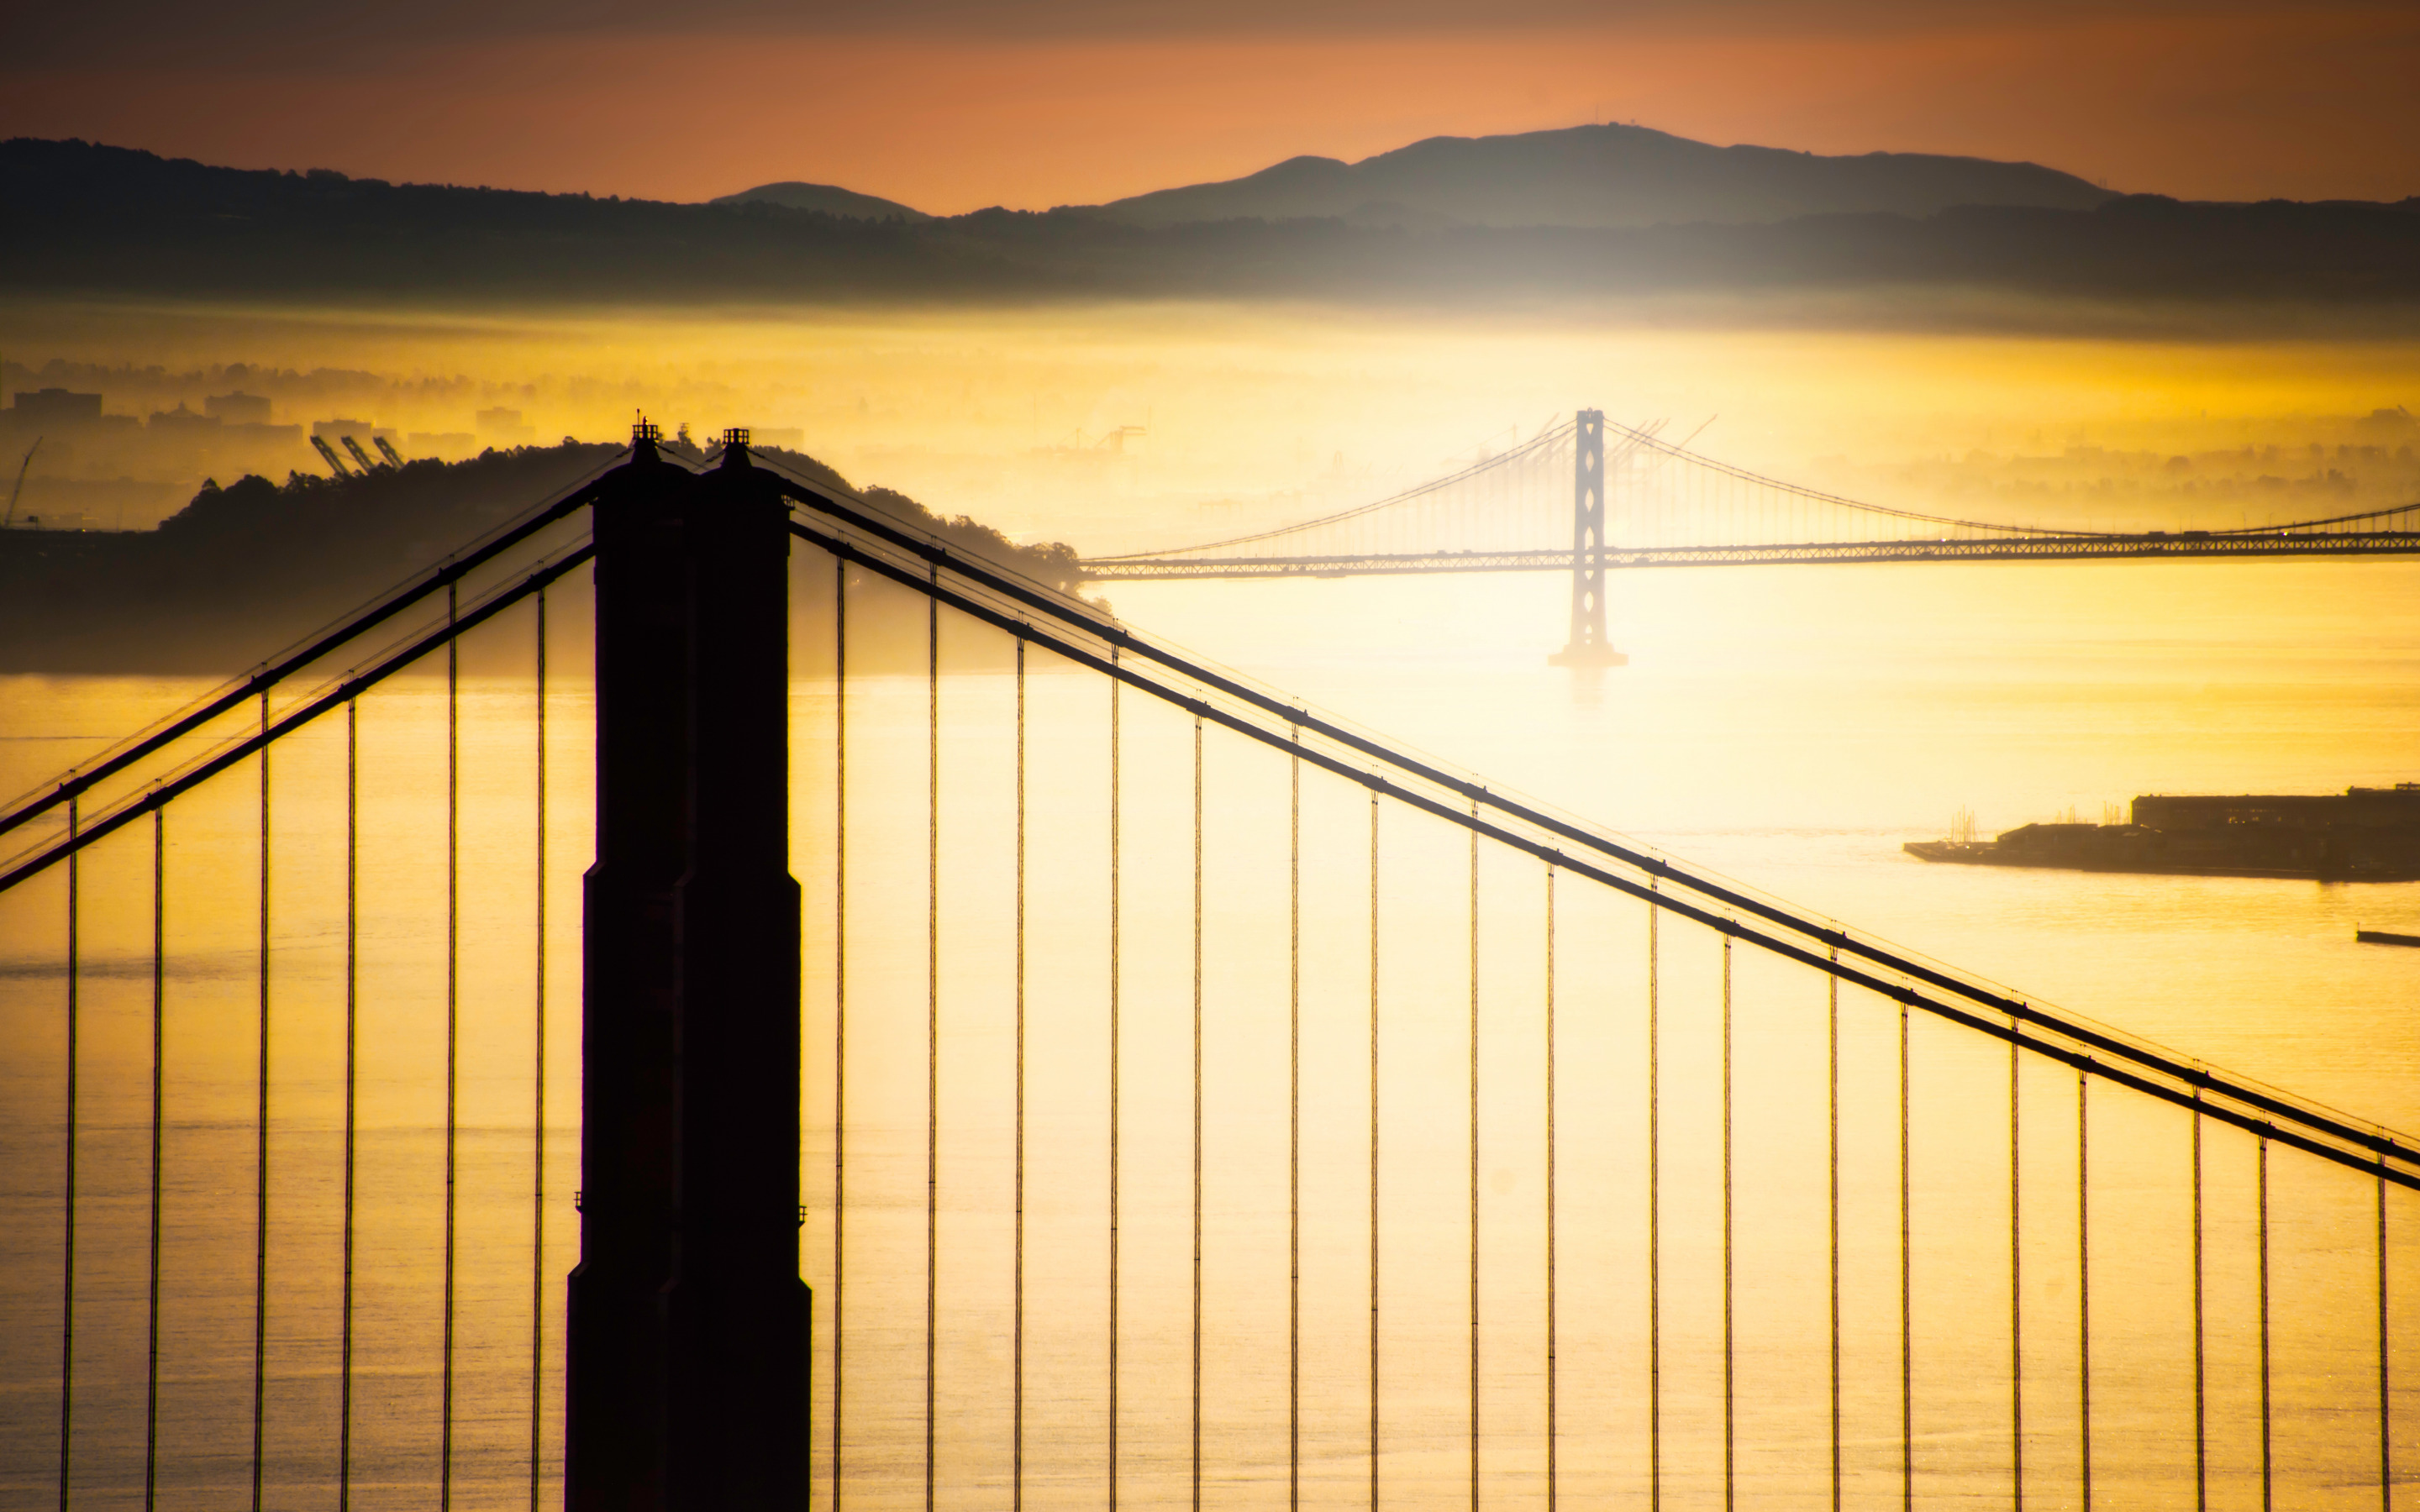 sunrise pictures golden gate - HD1600×1000